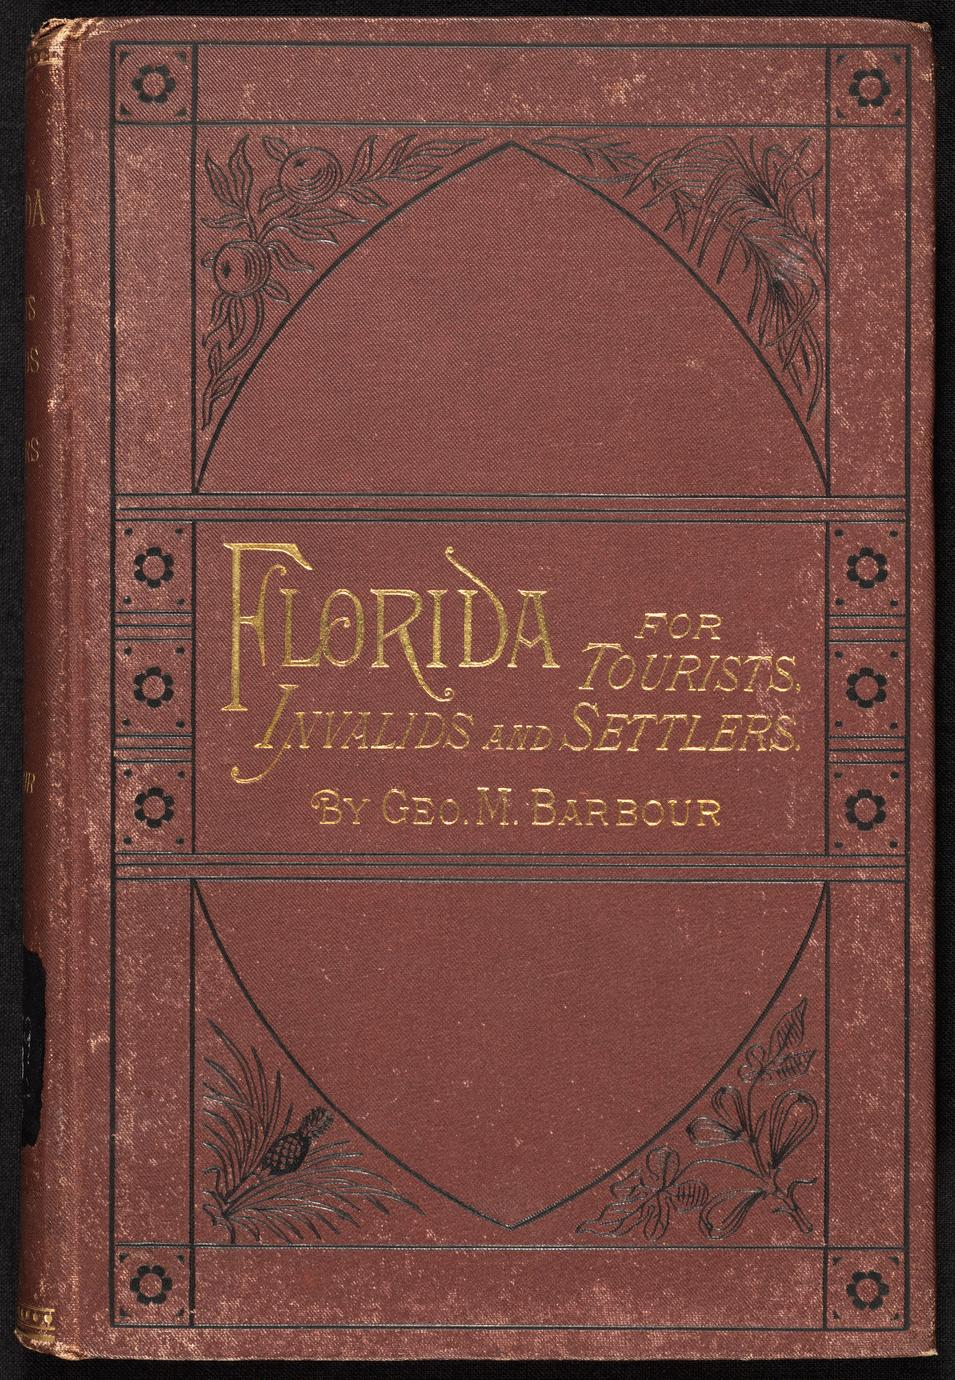 Florida for tourists, invalids, and settlers : containing practical information regarding climate, soil, and productions; cities, towns, and people ; the culture of the orange and other tropical fruits ; farming and gardening ; scenery and resorts ; sport; routes of travel (1 of 2)